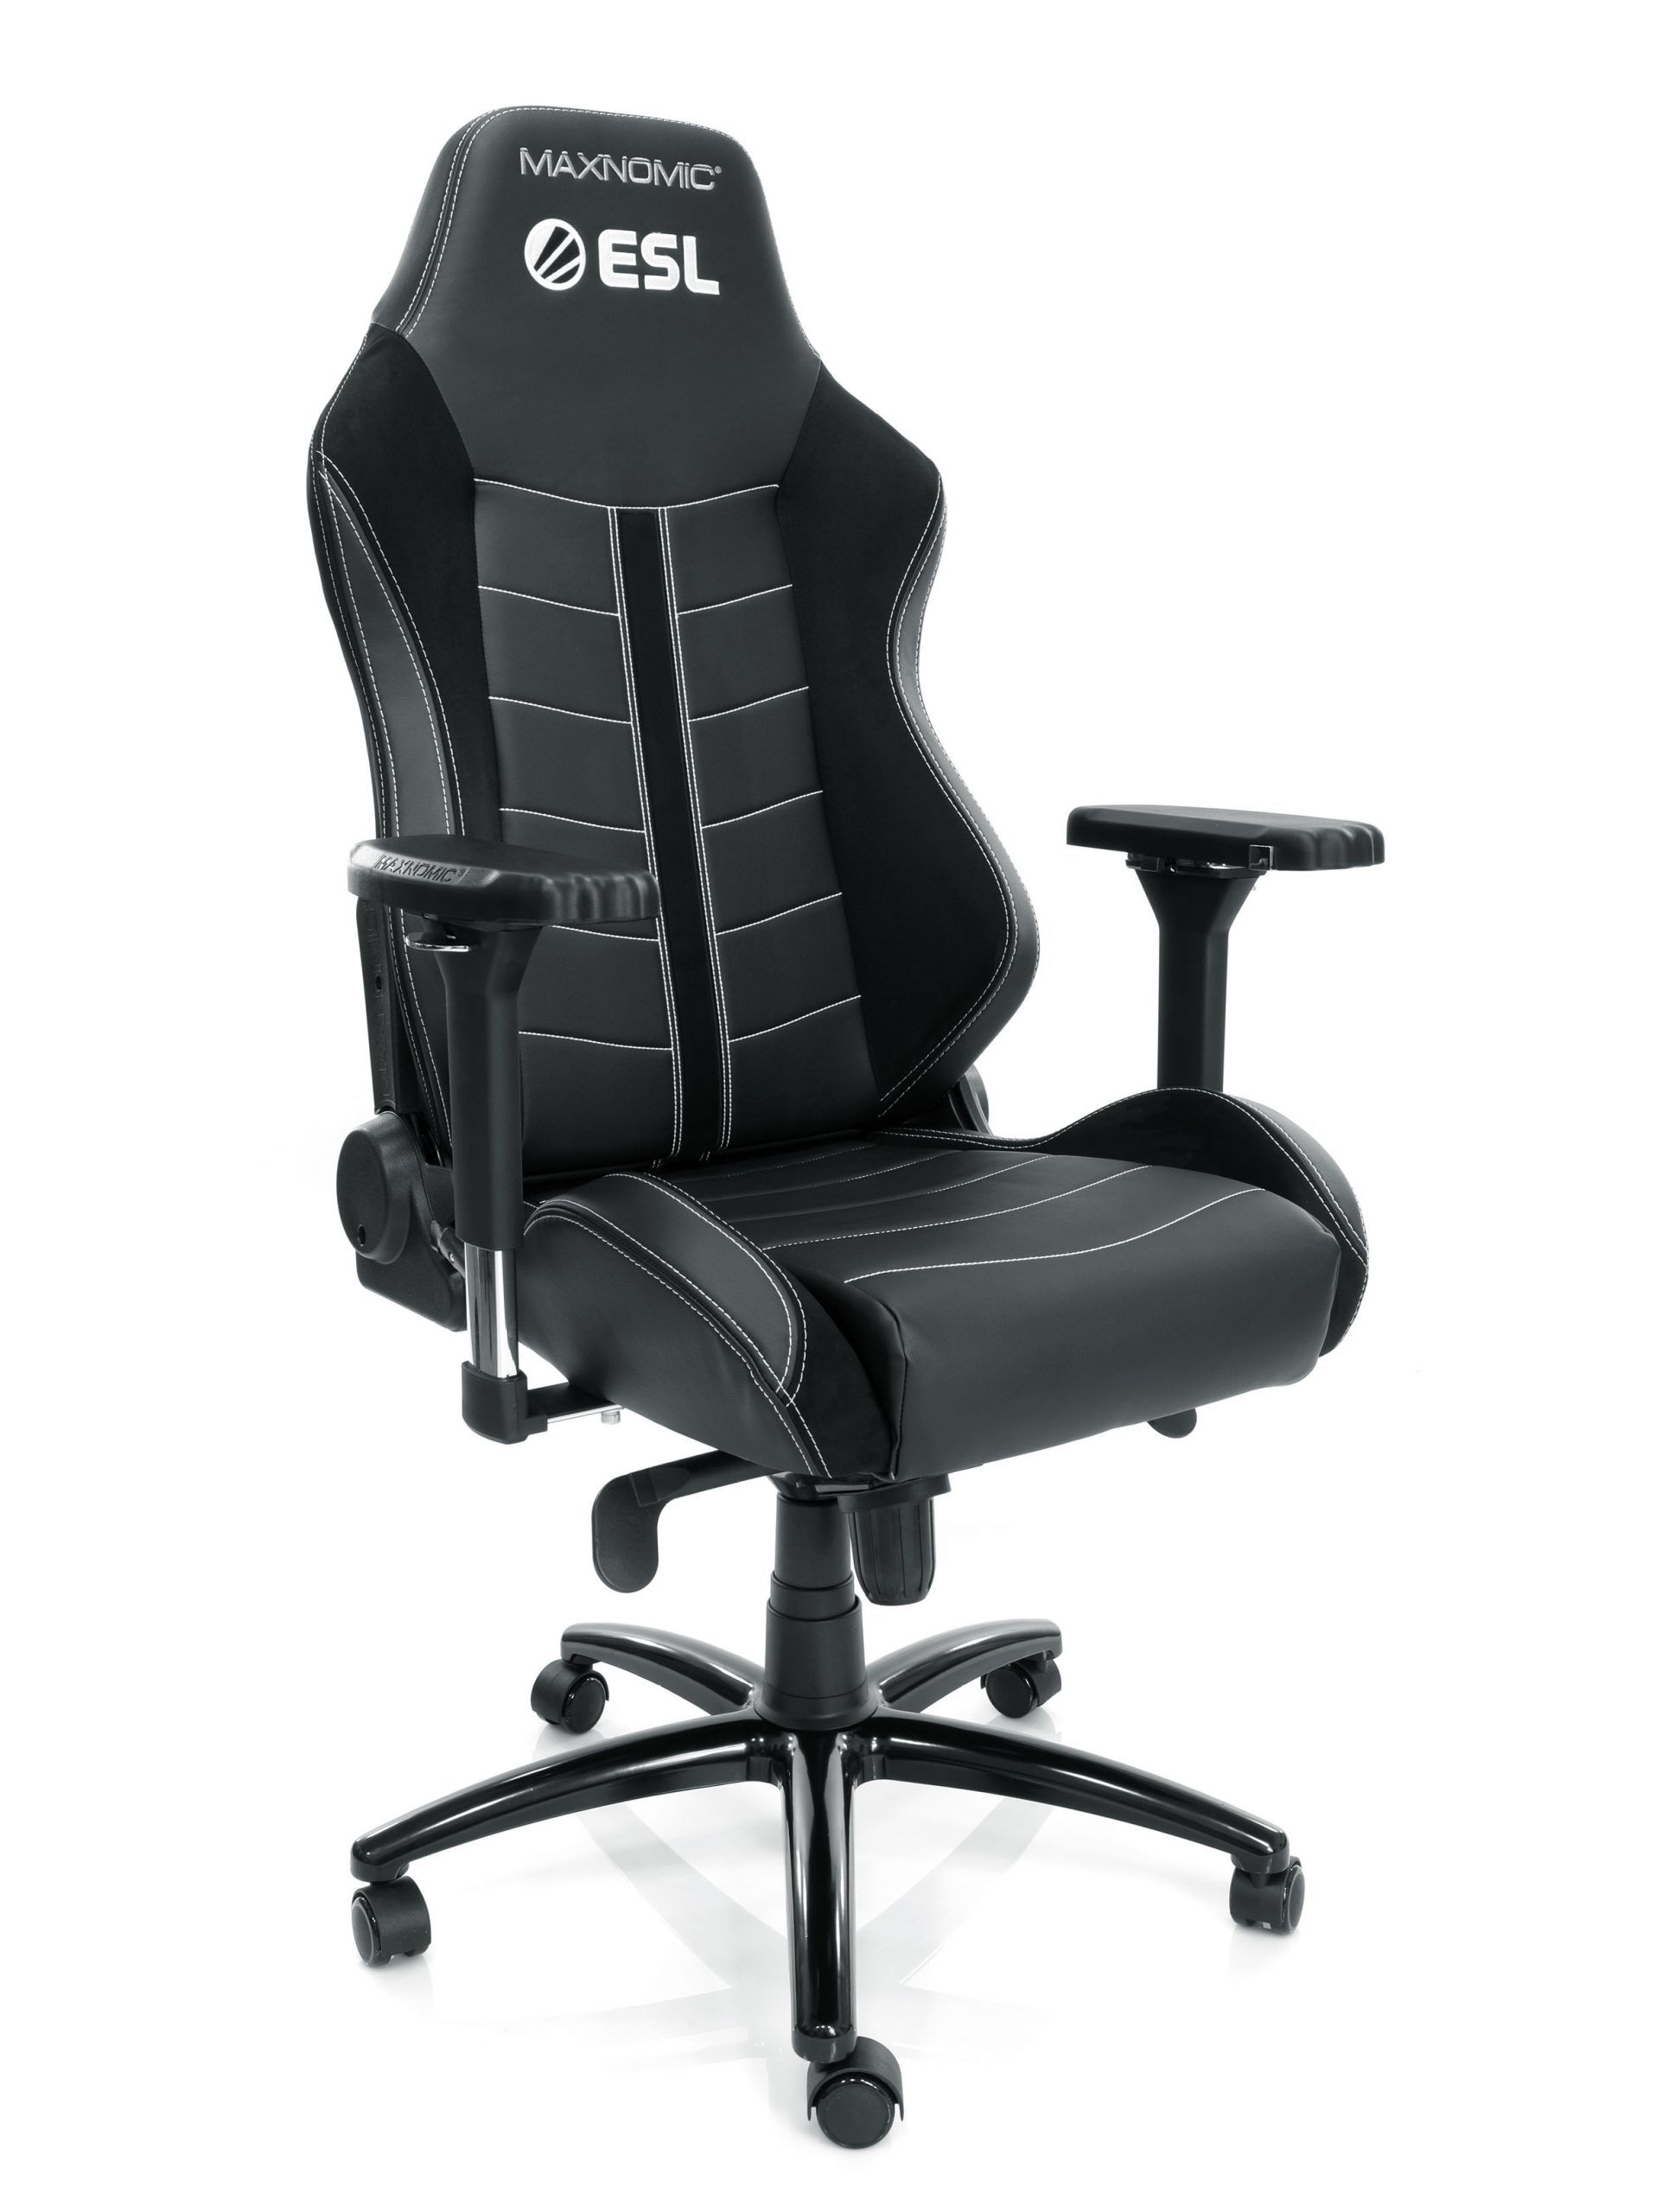 Gaming Chair Vs Office Chair 2021 di 2020